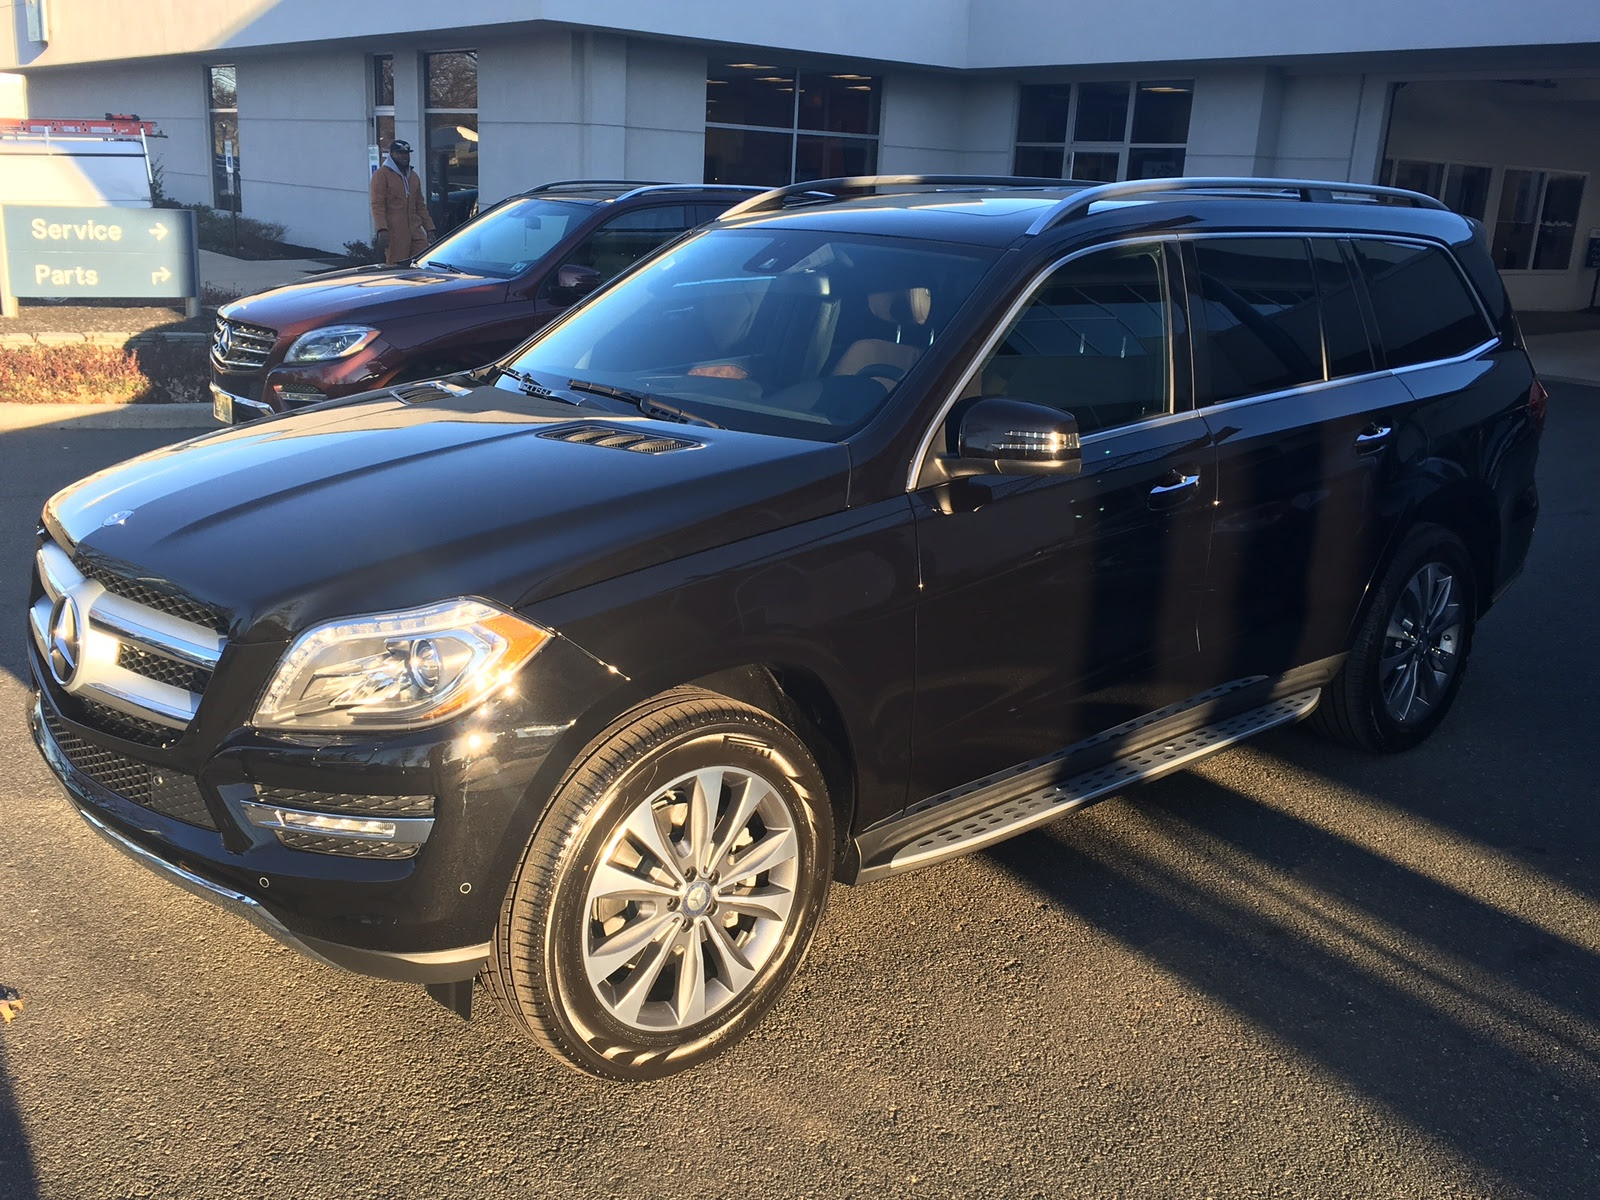 New 2015 / 2016 Mercedes-Benz GL-Class For Sale - CarGurus